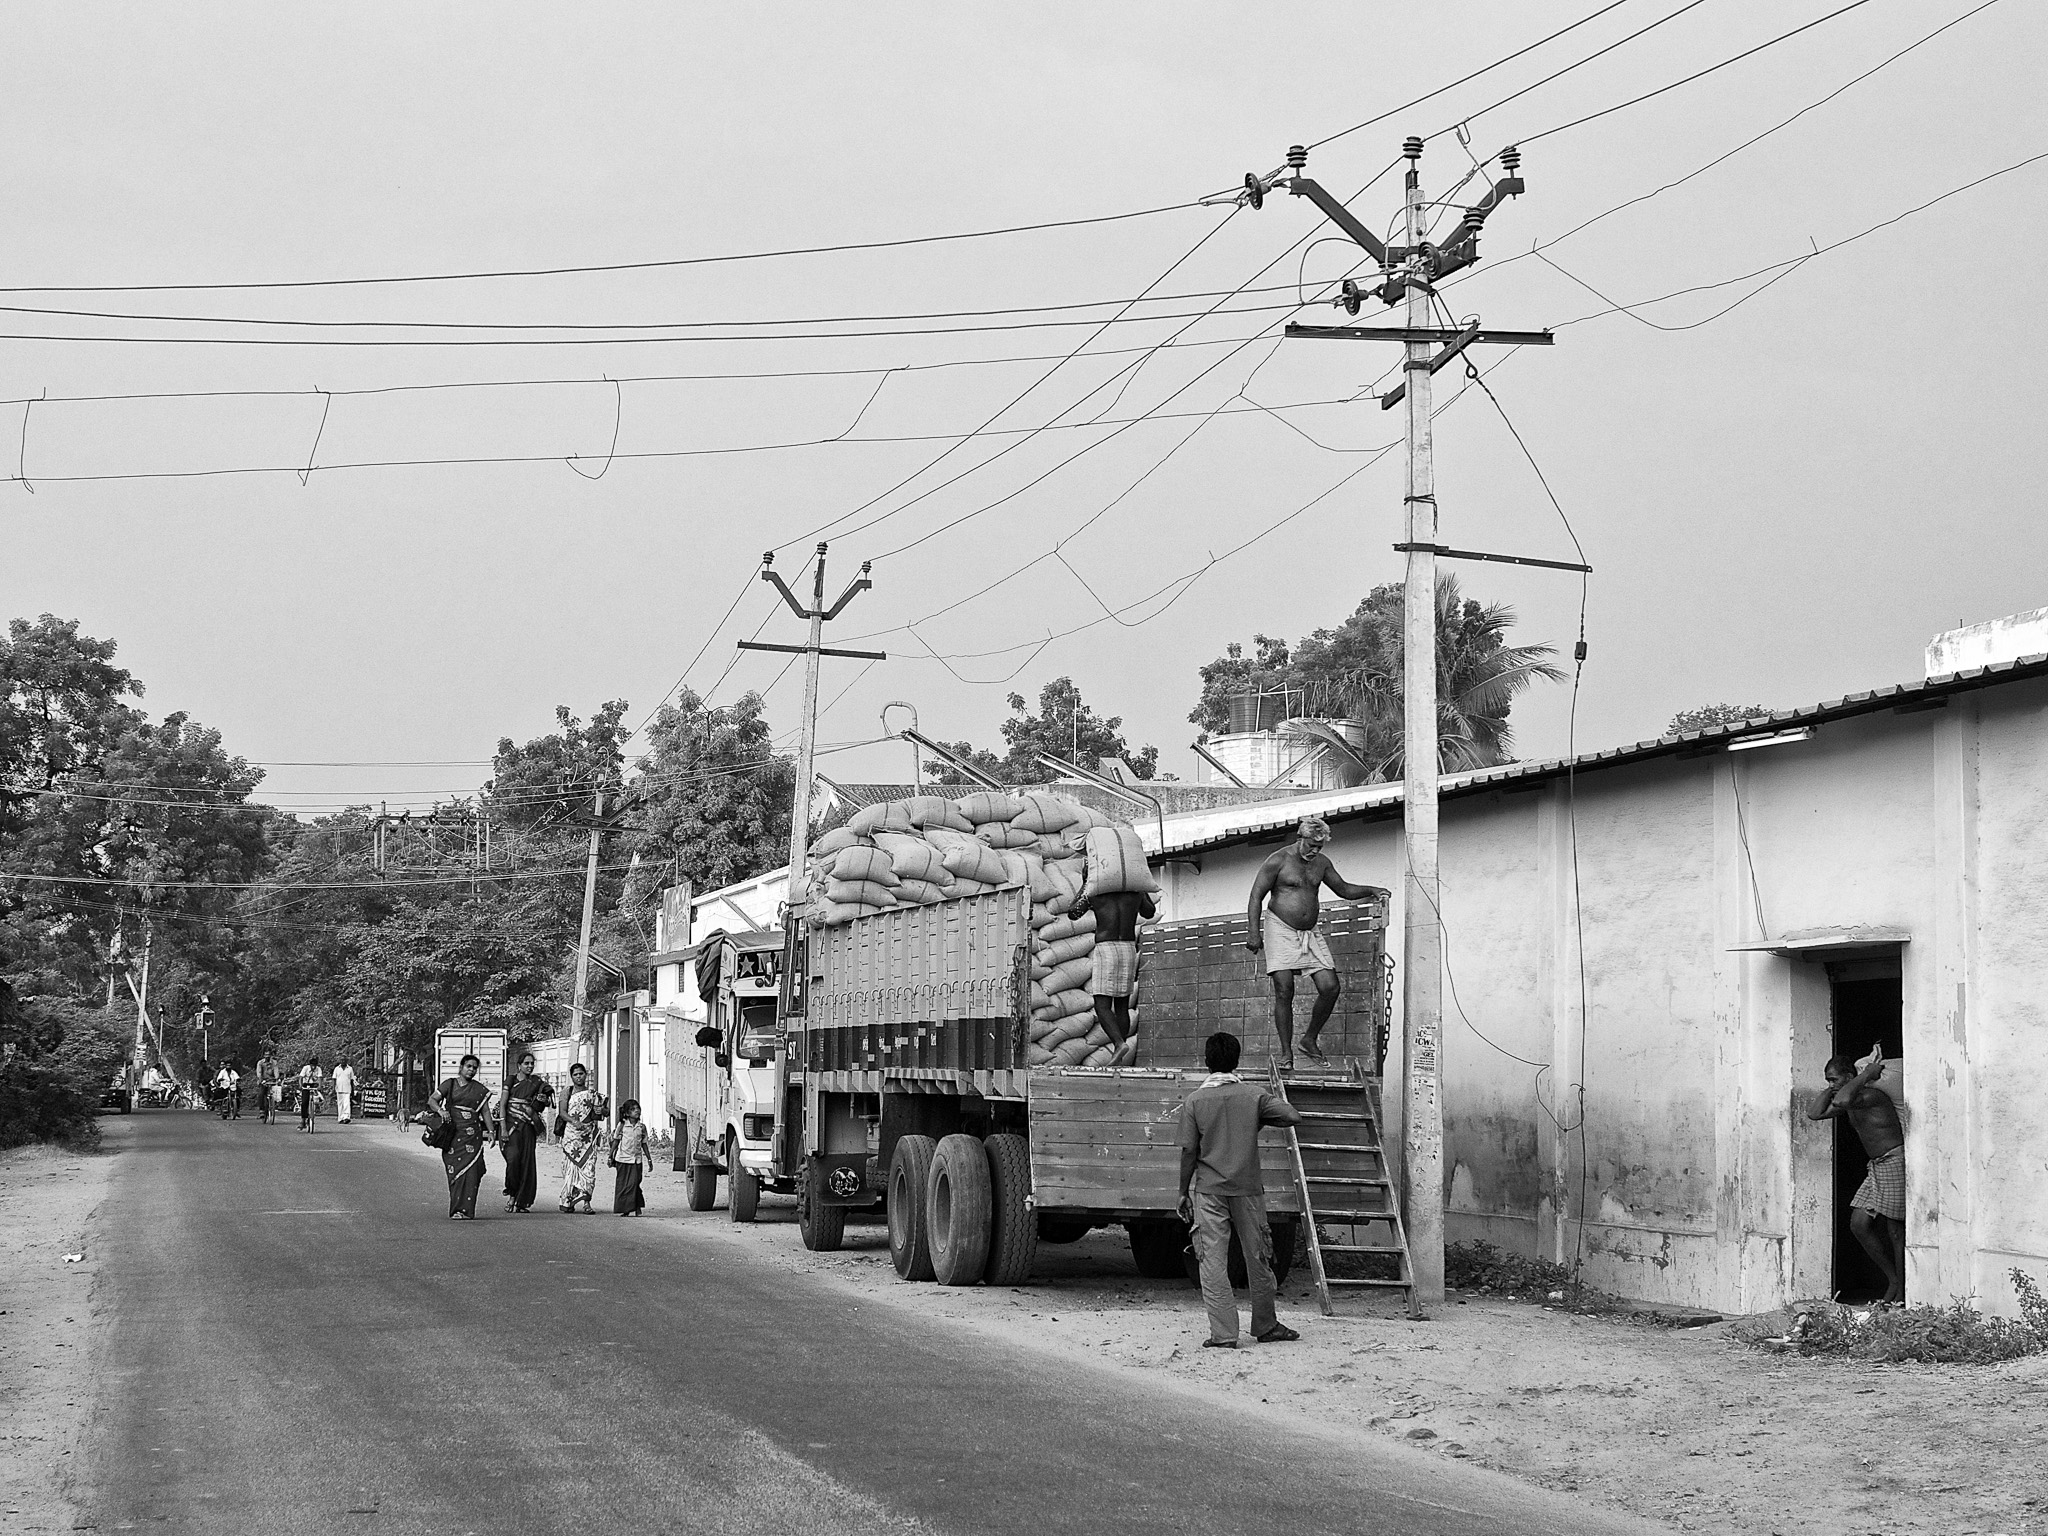 Loading men at work by the road side and teachers returning home, Virudhunagar, Tamil Nadu, India